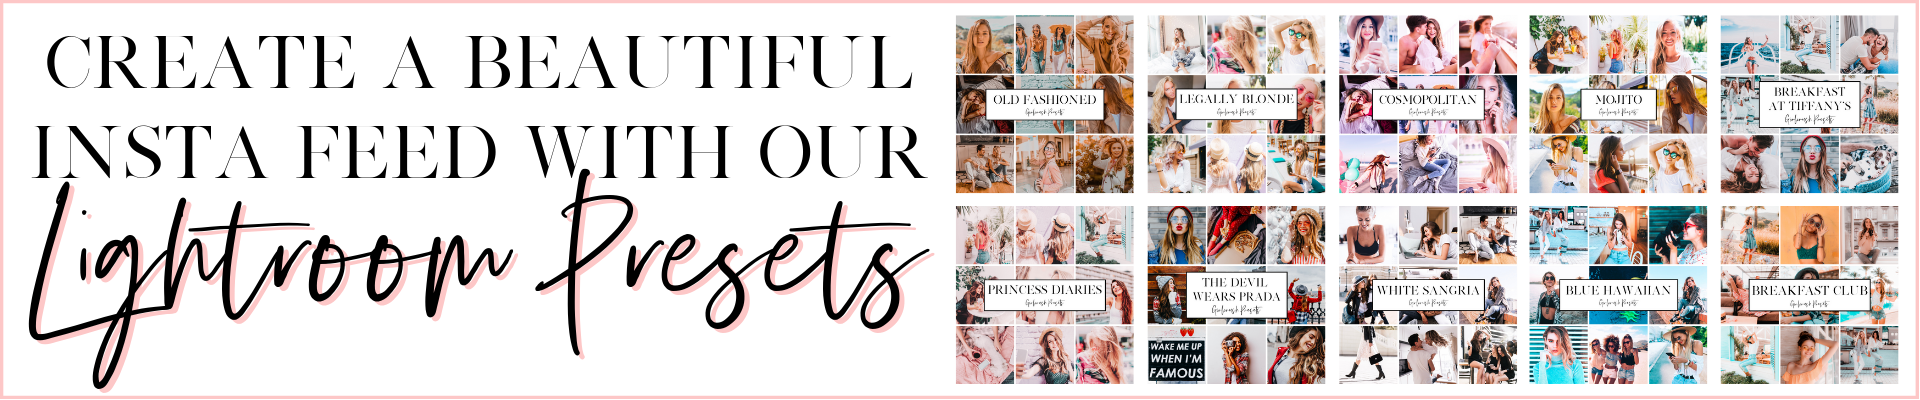 create a beautiful instagram feed with our lightroom presets